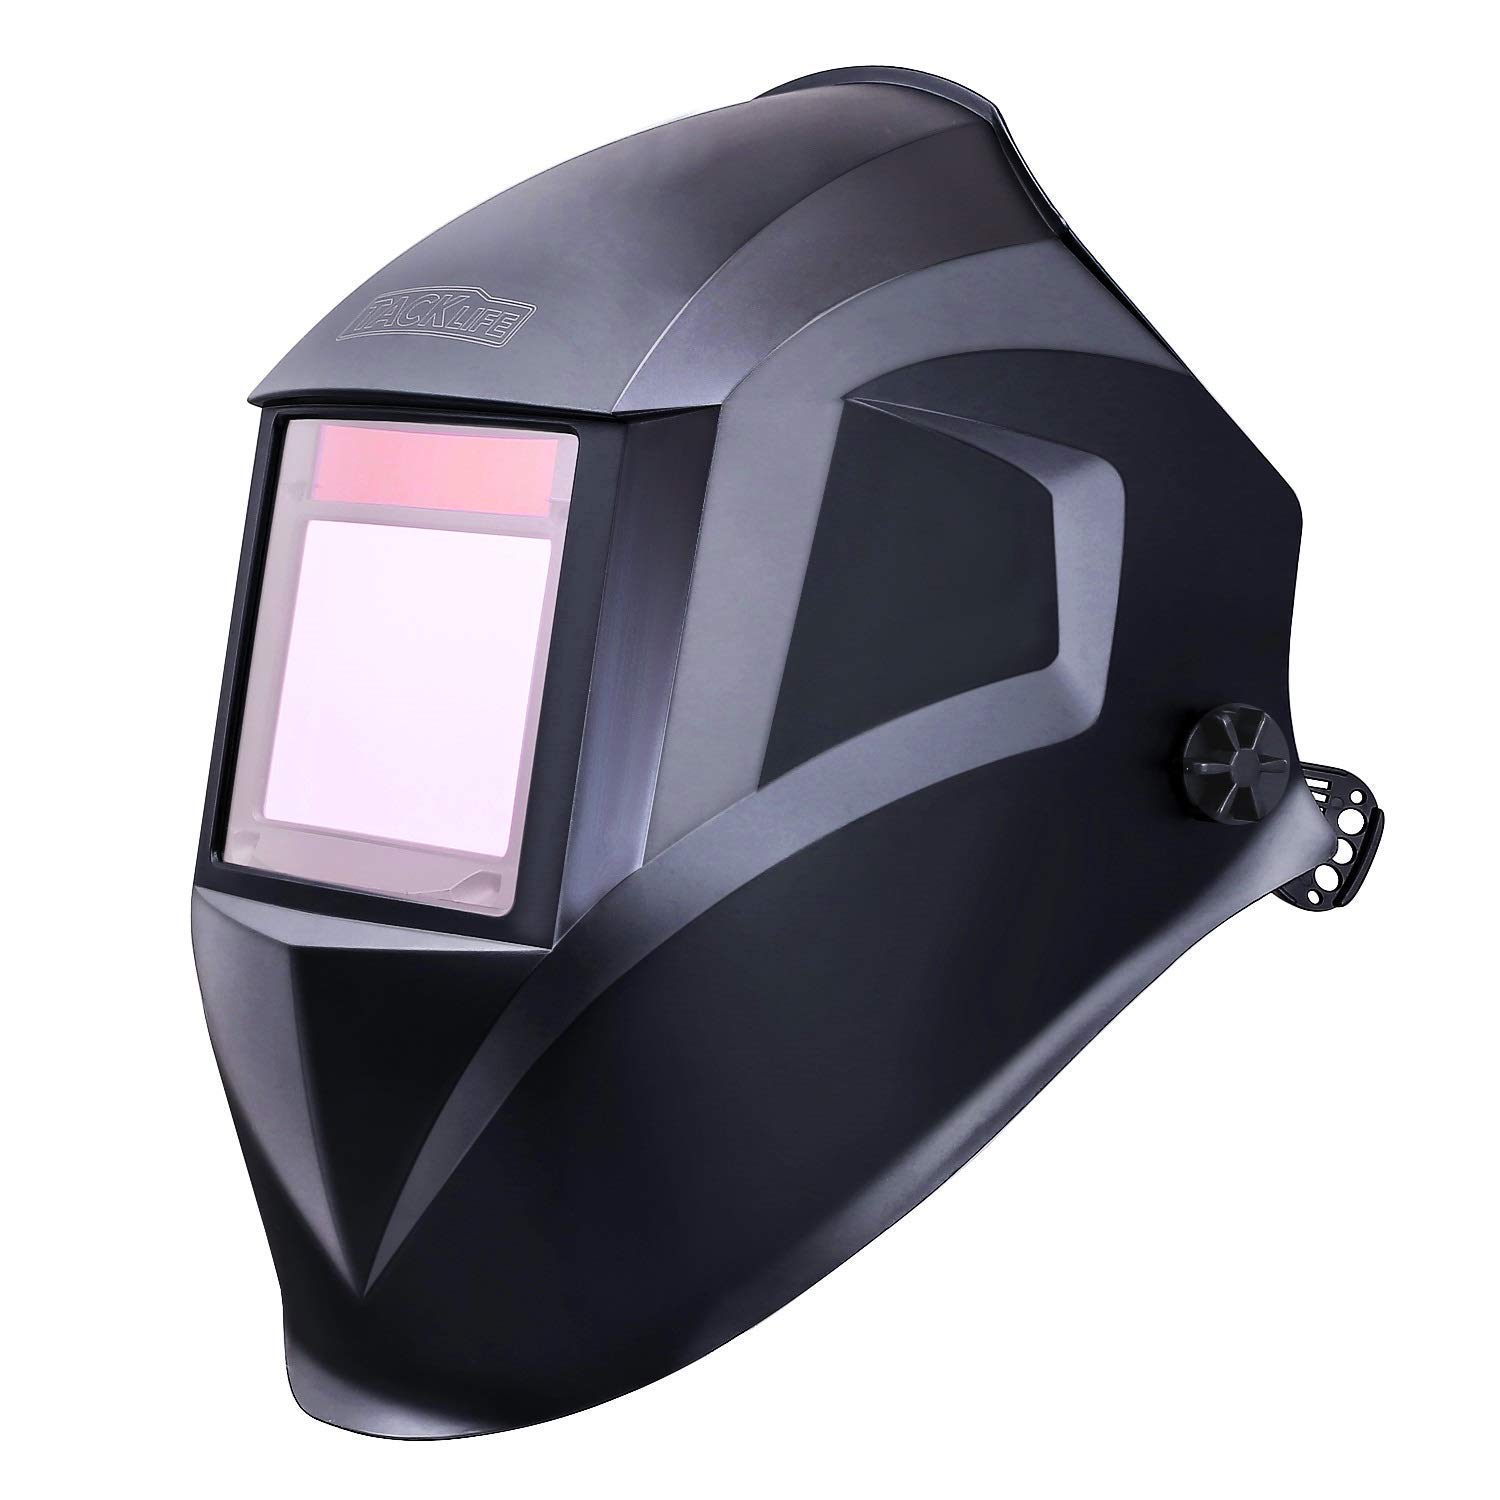 Solar Power Welding Helmet with Larger Viewing Area(3.94''x2.87''),Highest Optical Class (1/1/1/1), Wide Shade Range DIN 3/4-8/9-13, 6Pcs Extra Lenses, Grinding Feature for TIG MIG MMA Plasma - PAH03D